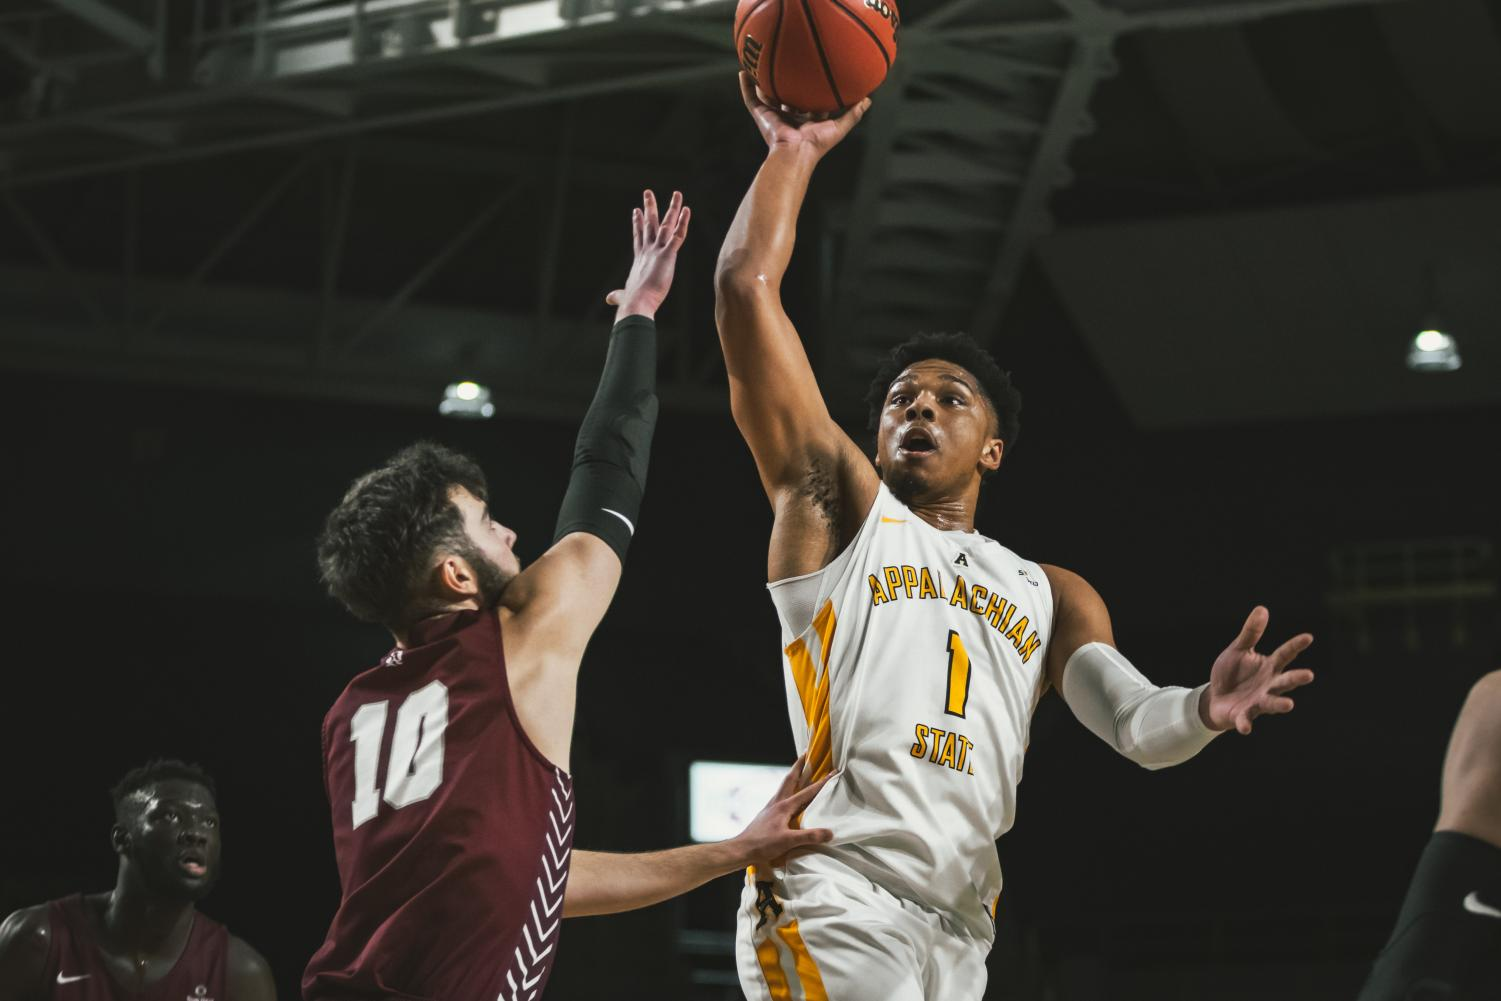 Junior guard Justin Forrest shoots a floater in App State's 73-57 loss to Little Rock on Jan. 19. Forrest finished with 22 points.